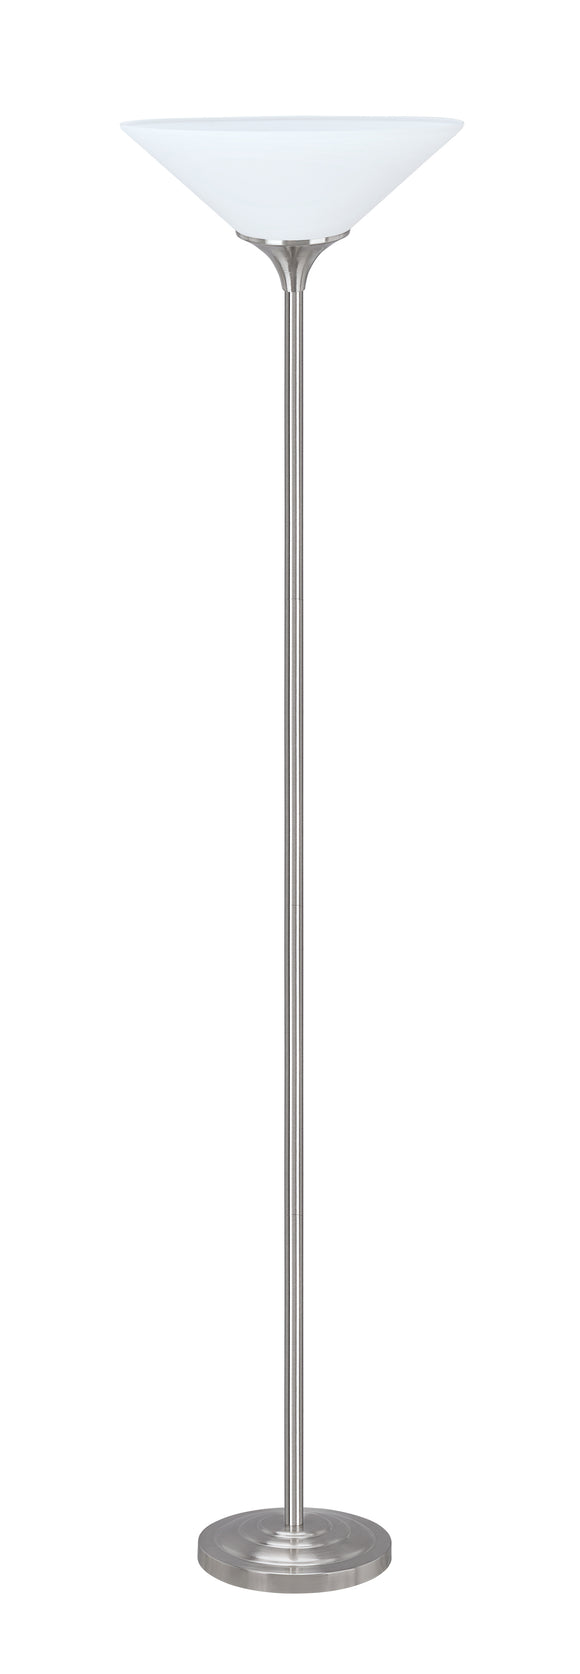 # 45016-11, One-Light Metal Torchiere Floor Lamp, Transitional Design in Satin Nickel Finish, 71